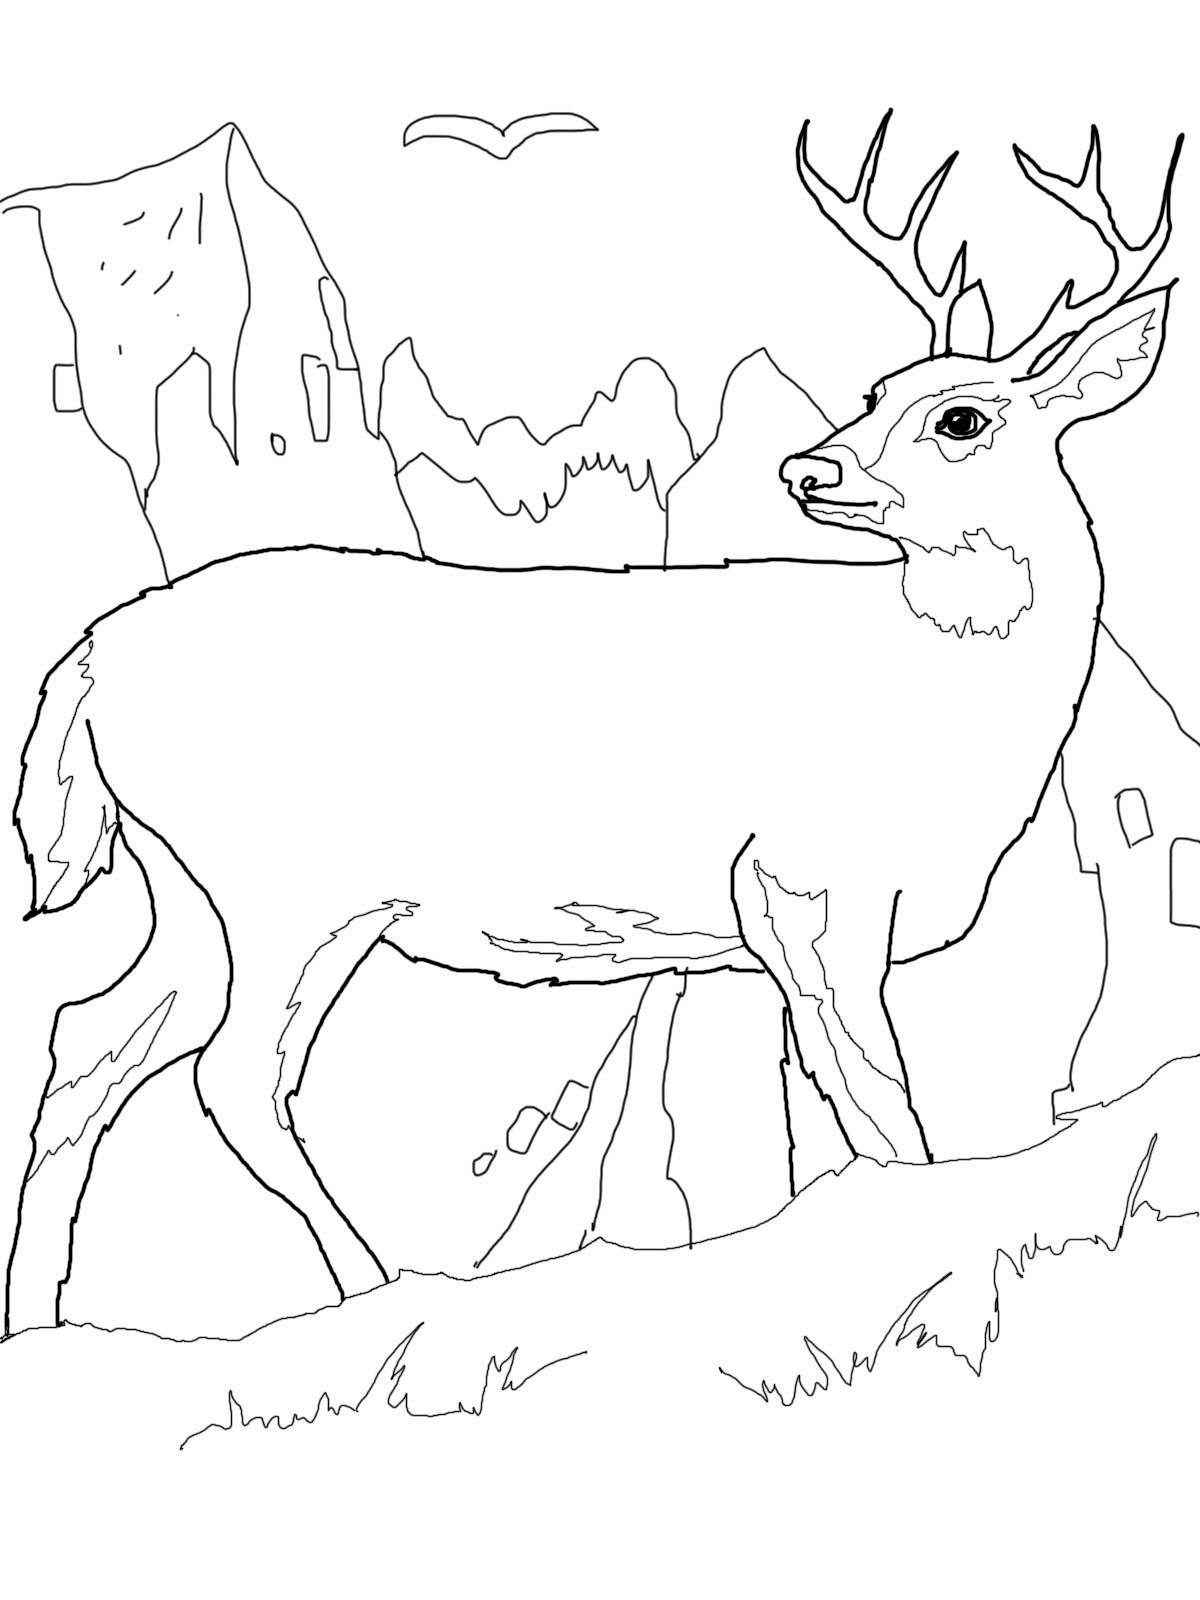 deer coloring pages - photo#2